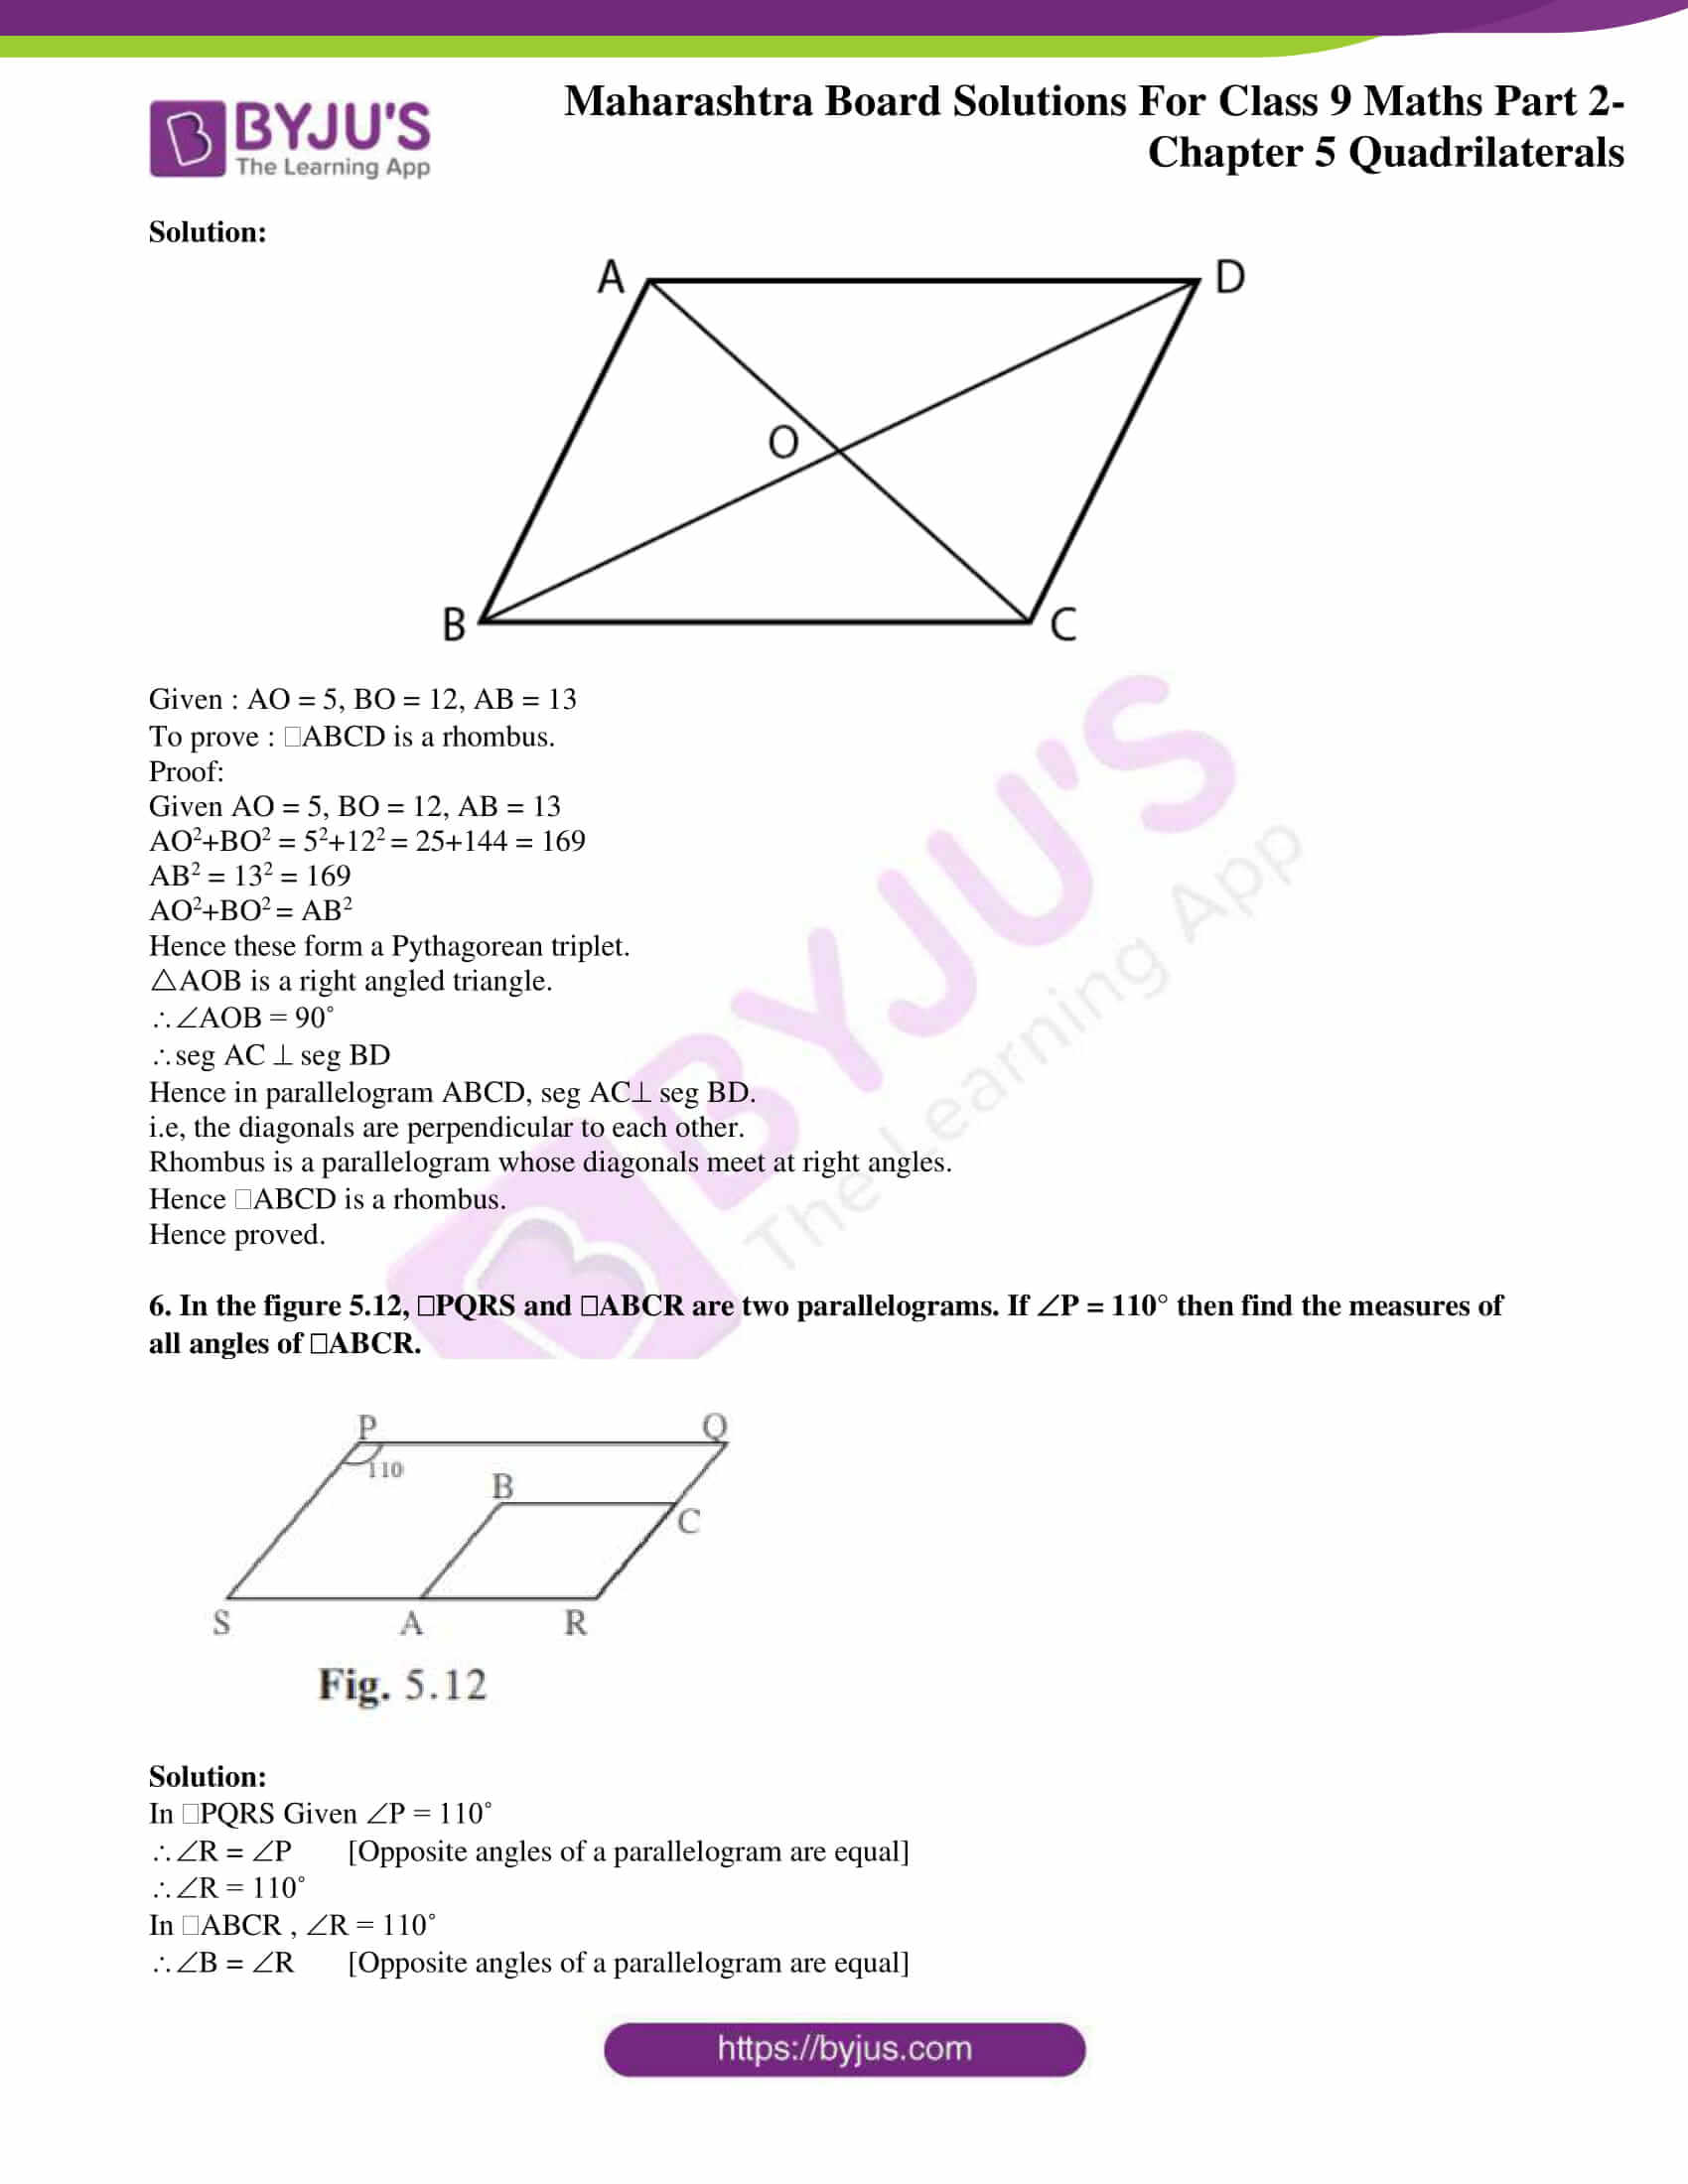 msbshse solutions for class 9 maths part 2 chapter 5 04